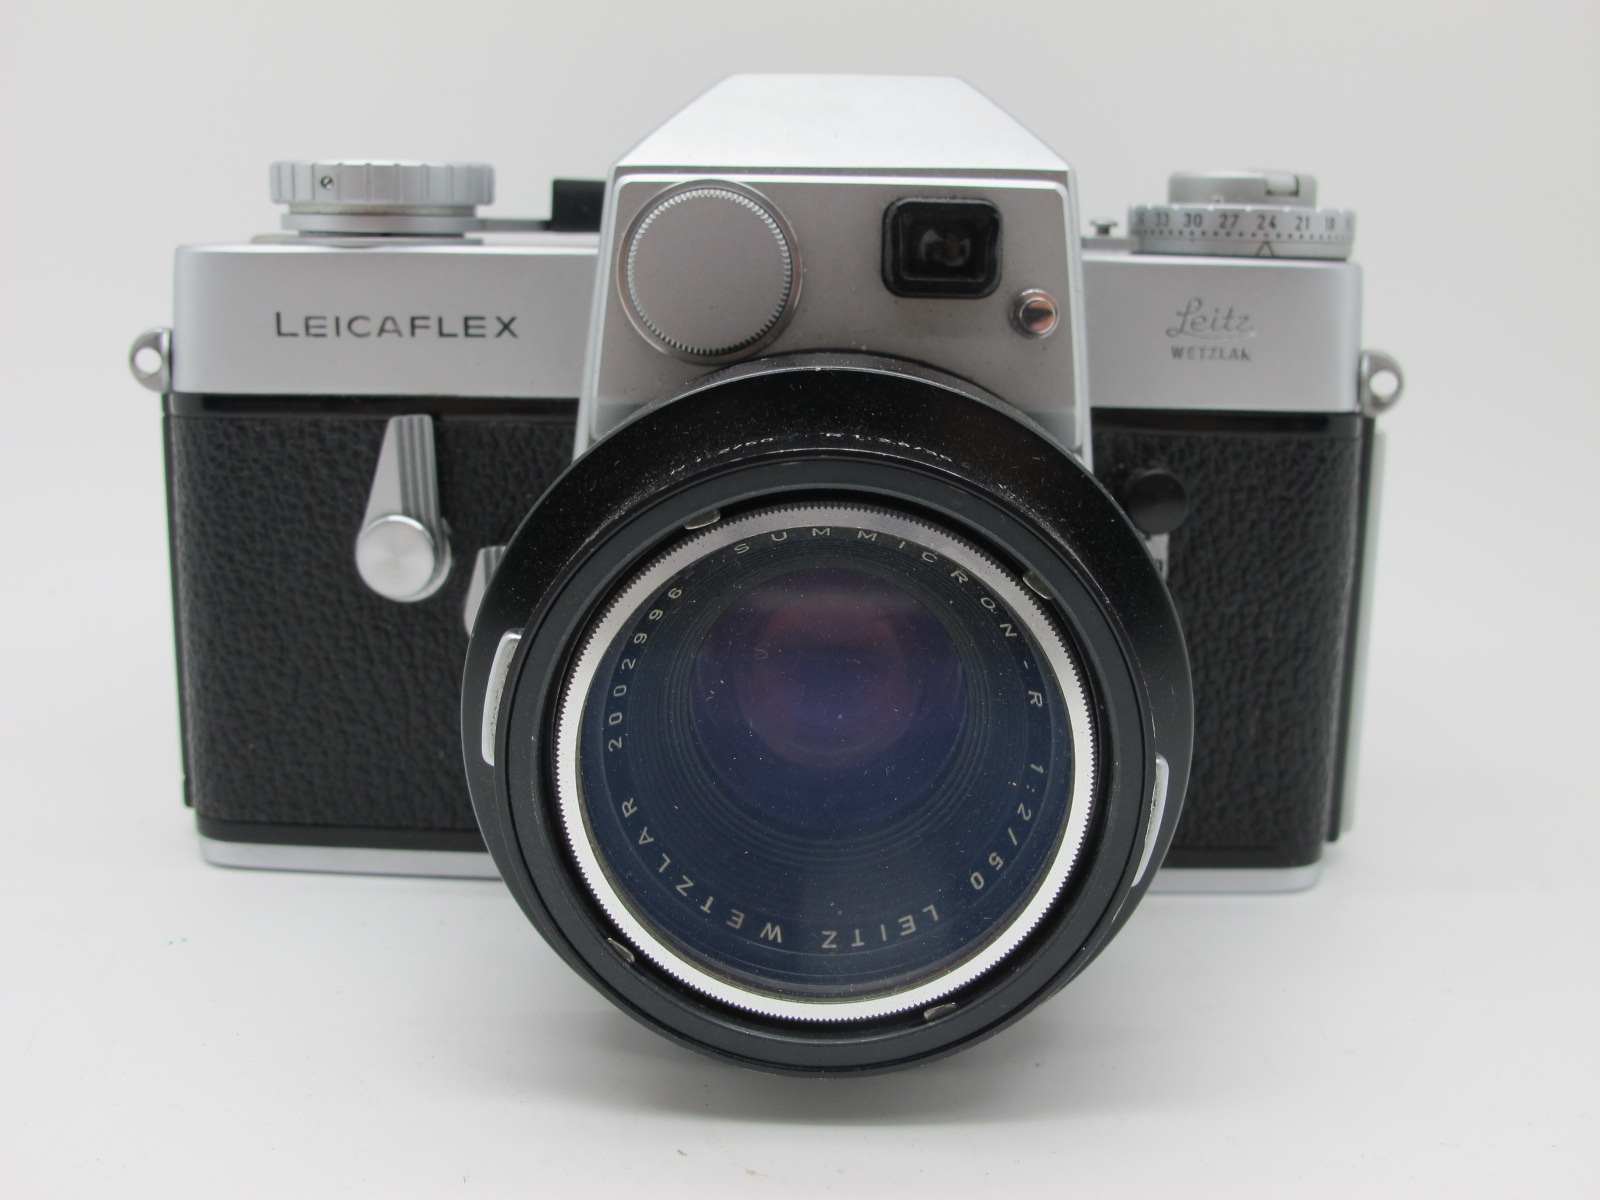 Leicaflex Manual Camera, with Leitz Wetzlar Summicron - R 1:2/50 lens in a black case. - Image 3 of 8